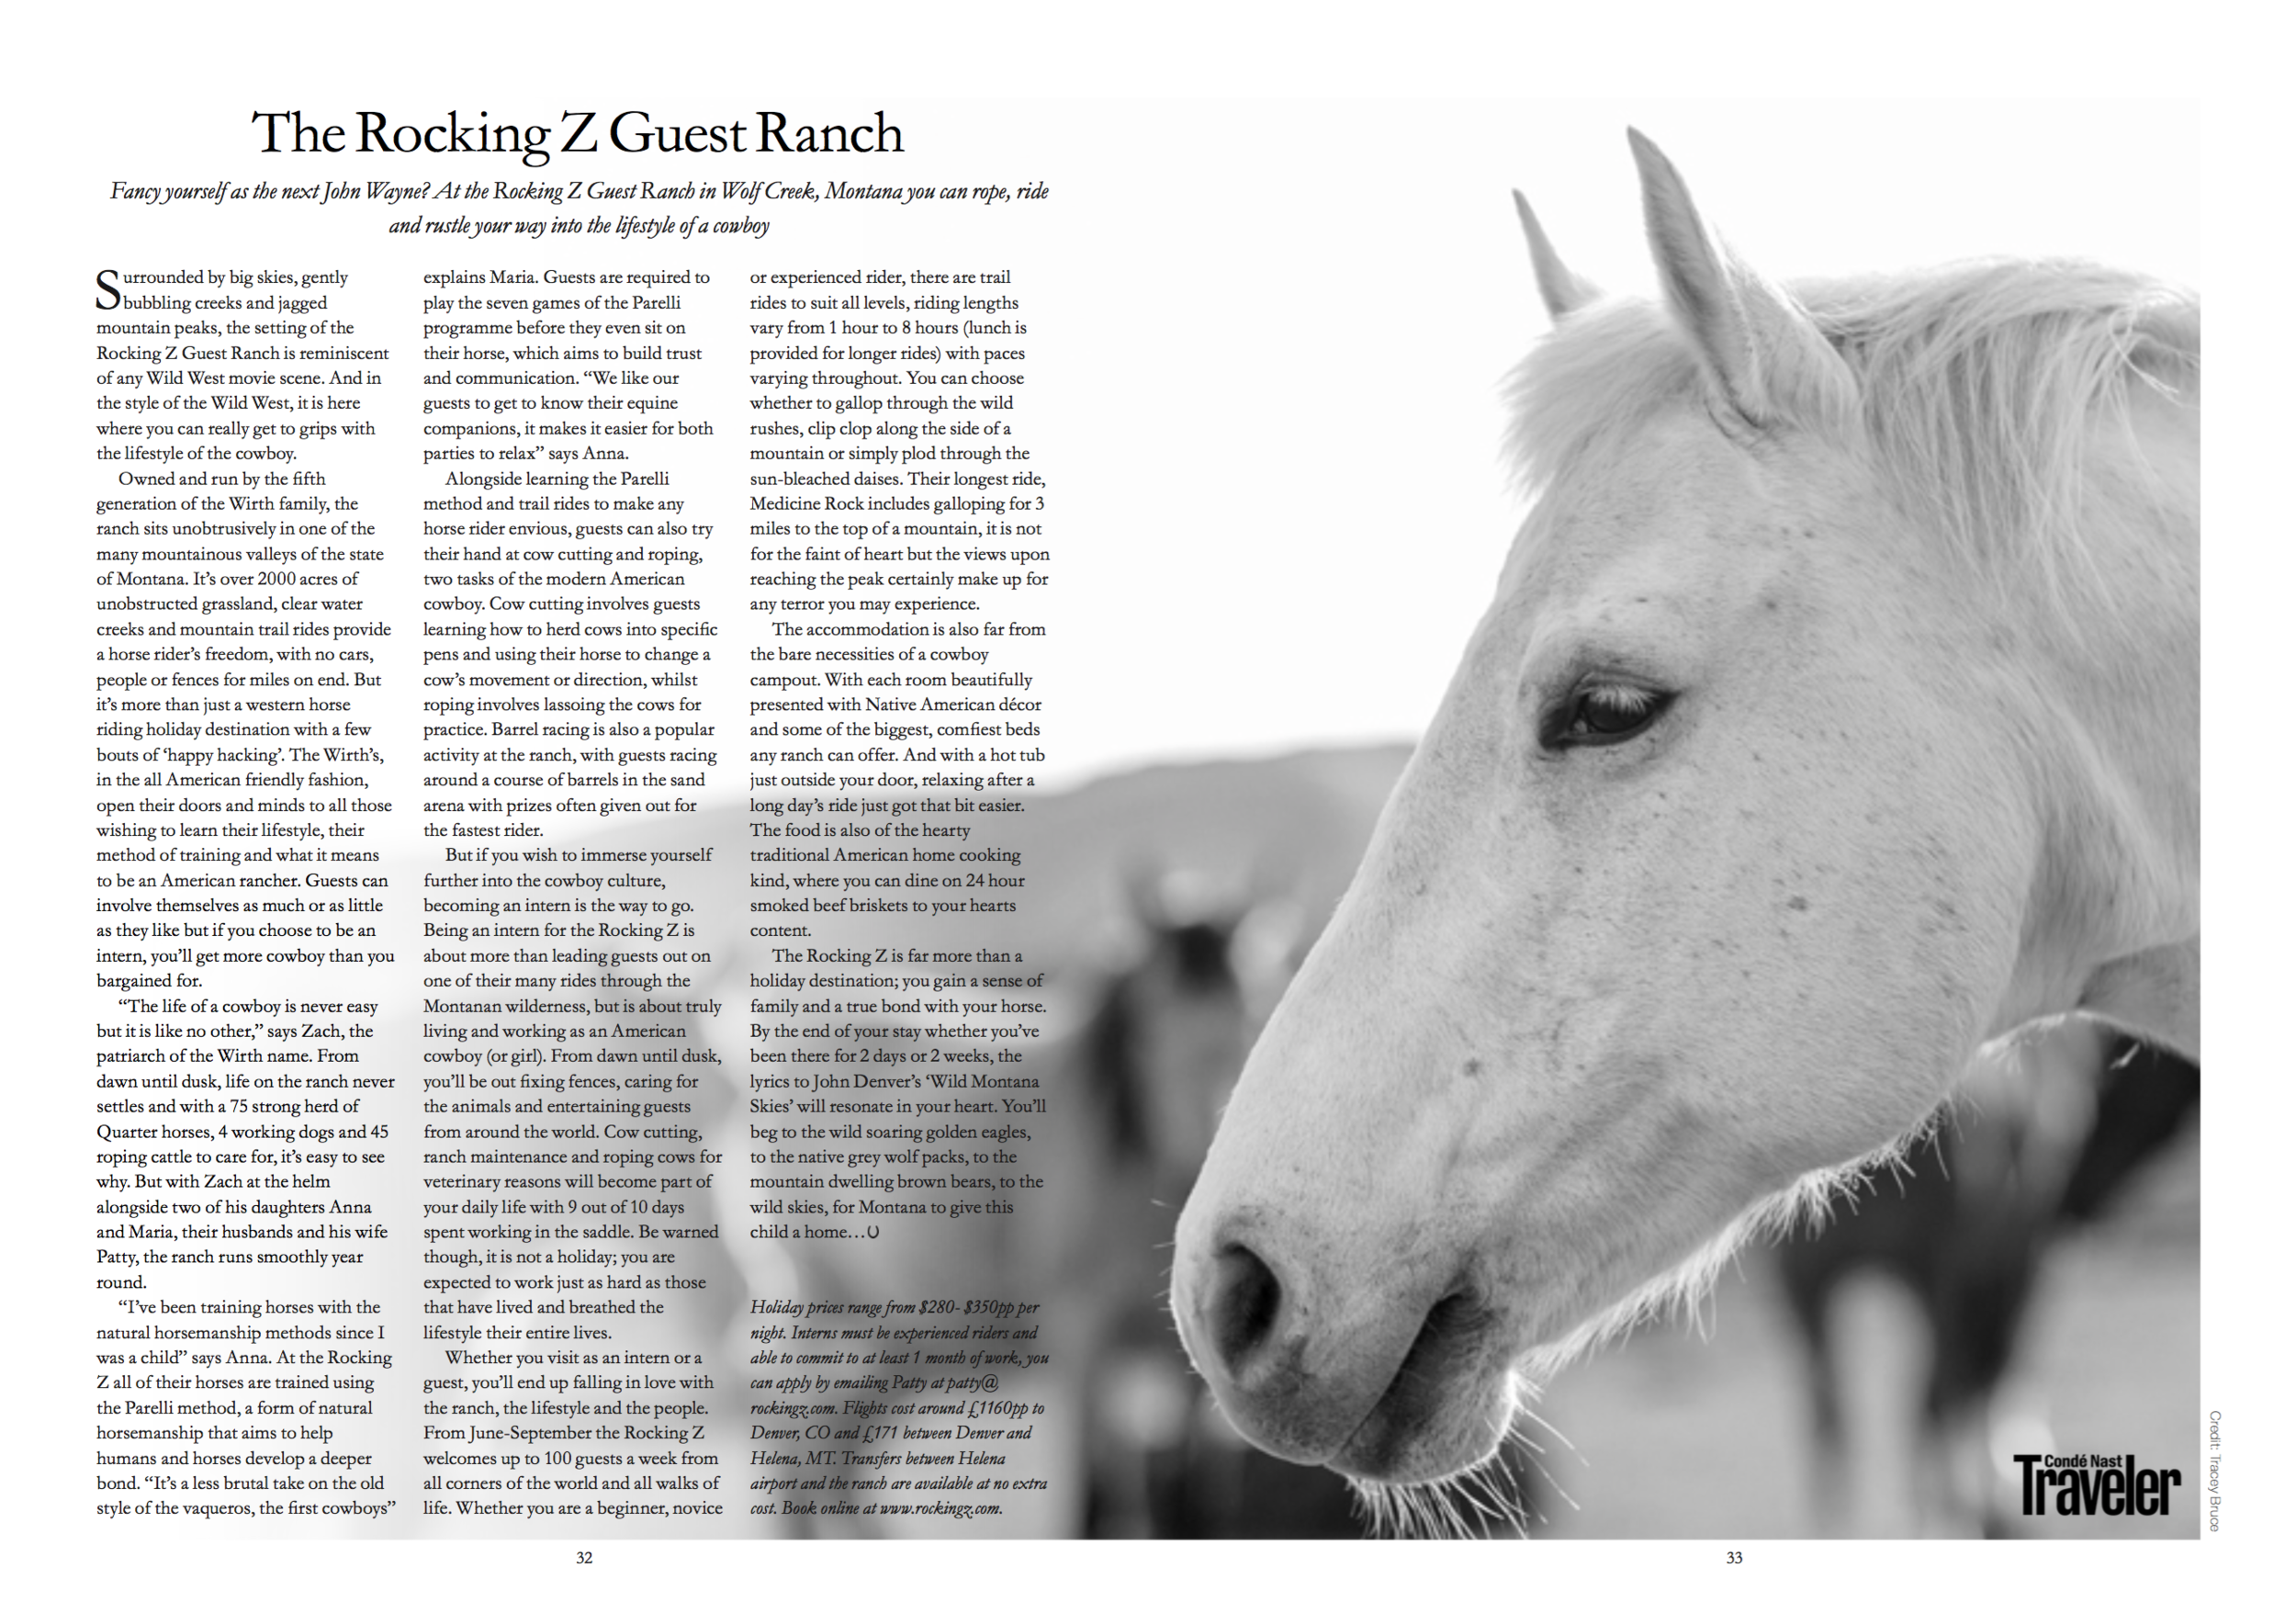 Travel feature on The Rocking Z Guest Ranch